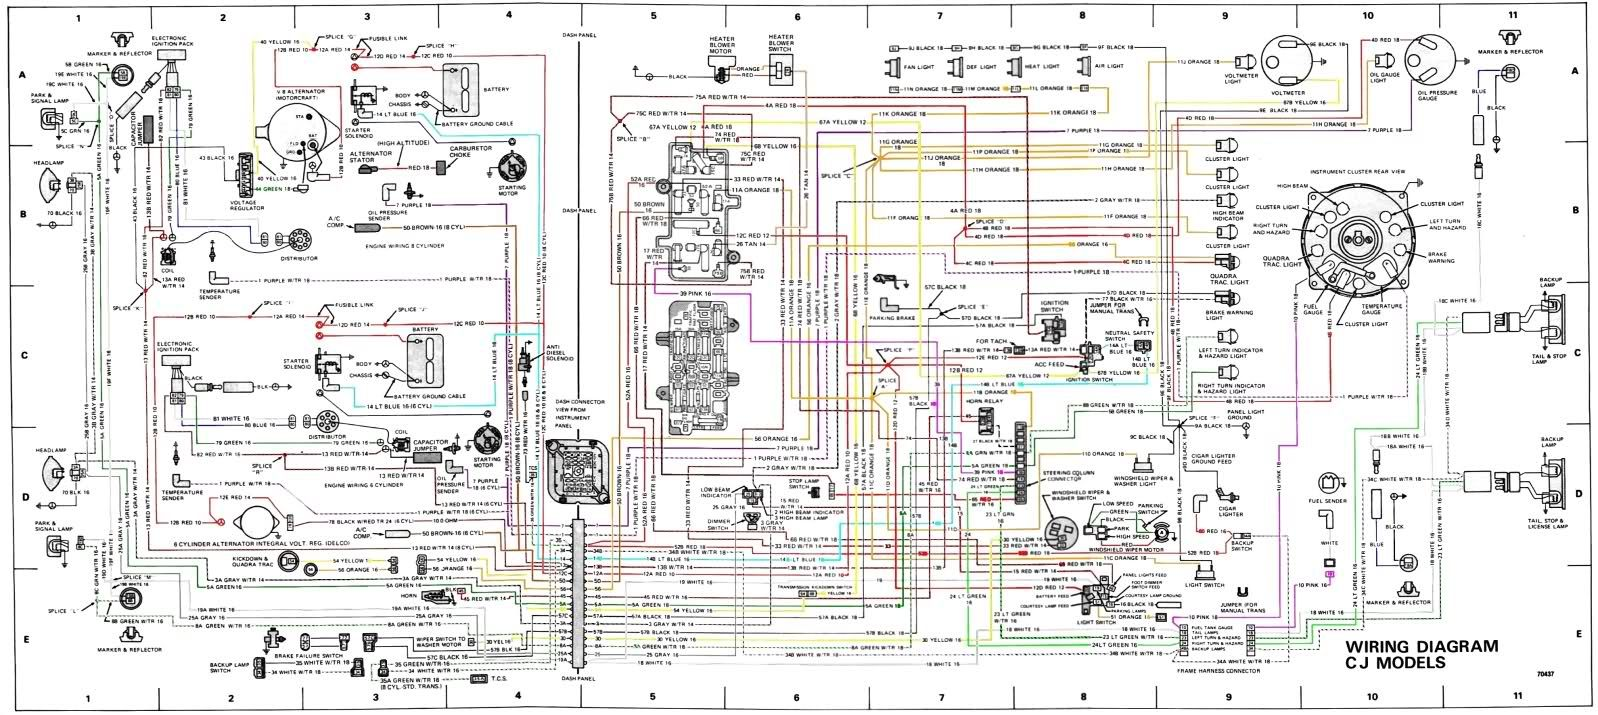 Jeep Cj Ignition Switch Wiring Diagram | Wiring Diagram Jeep Cj Ignition Wiring on jeep cj push button ignition, jeep cherokee wiring harness, jeep cj7 engine diagram, mercury topaz ignition wiring, jeep wagoneer ignition wiring, jeep wj ignition wiring, dodge neon ignition wiring, ford truck ignition wiring, jeep willys ignition wiring, jeep cherokee engine diagram, 1974 cj5 wiring, cj5 ez wiring, jeep 4.0 wiring harness, jeep cj7 wiring schematic, jeep grand cherokee stereo wiring, jeep liberty ignition wiring, jeep cj7 ignition switch, jeep wrangler yj ignition wiring, jeep wiring diagram, ford duraspark ignition wiring,